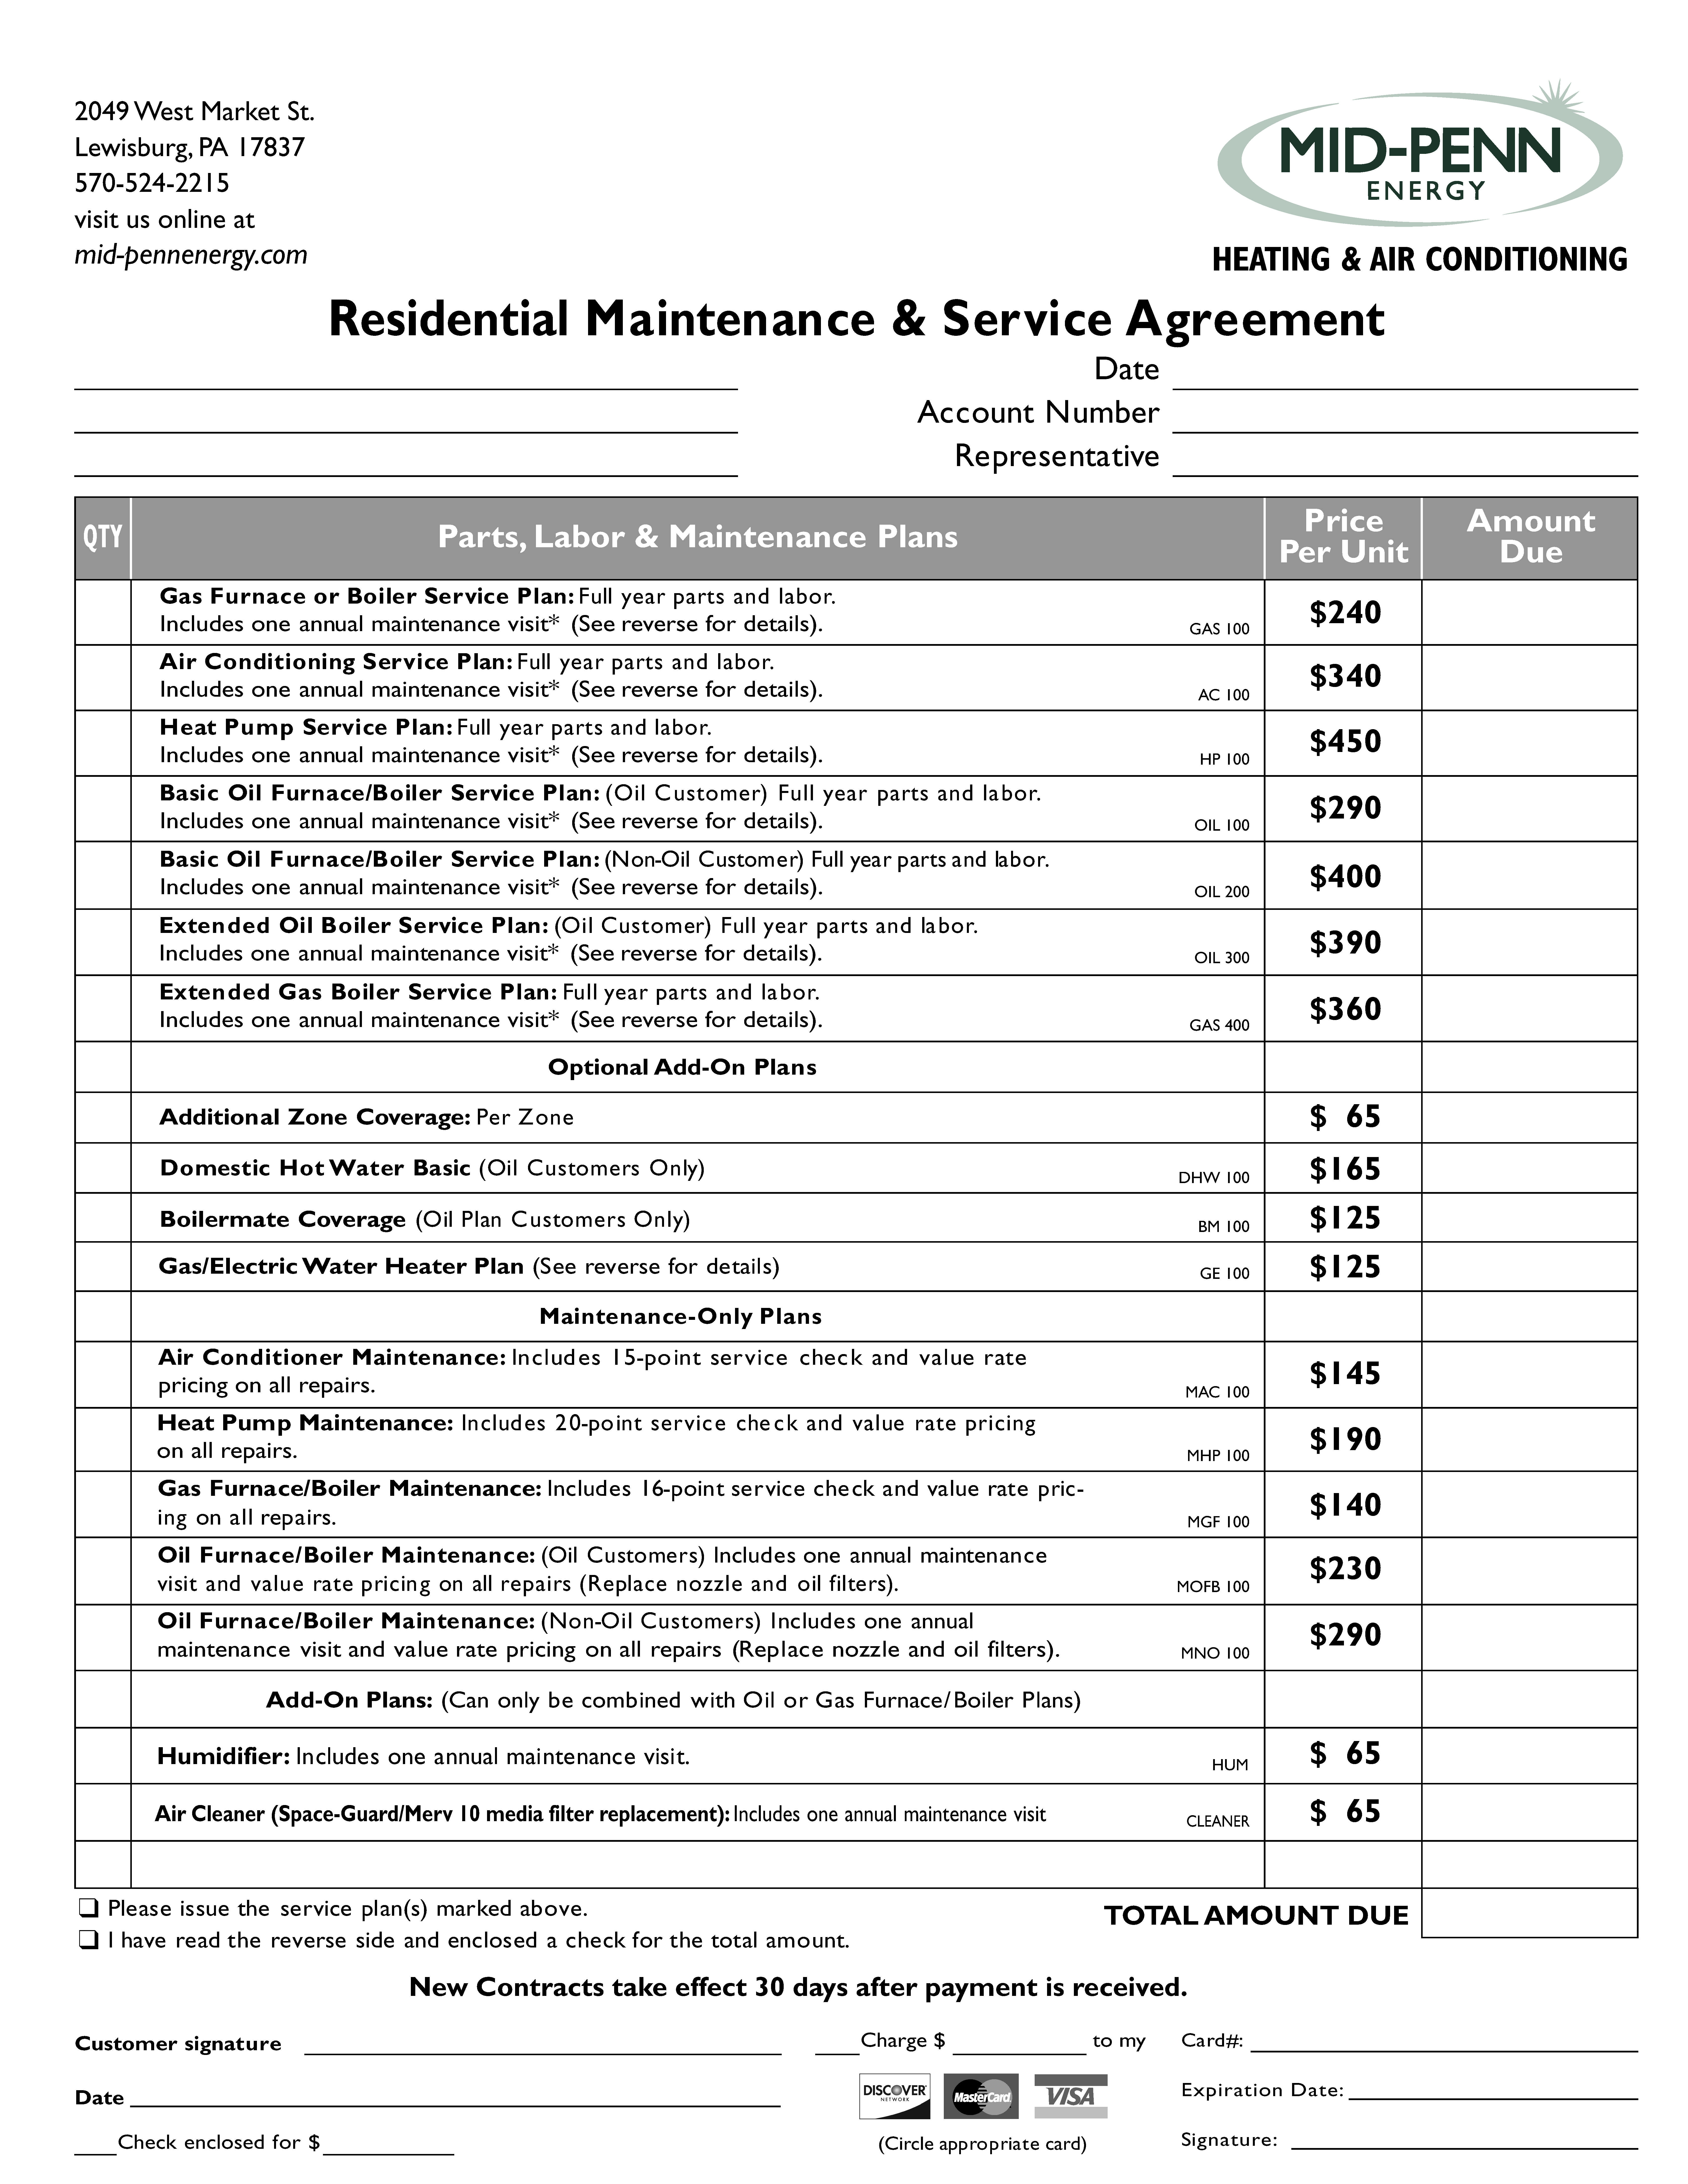 Maintenance & Service Agreements